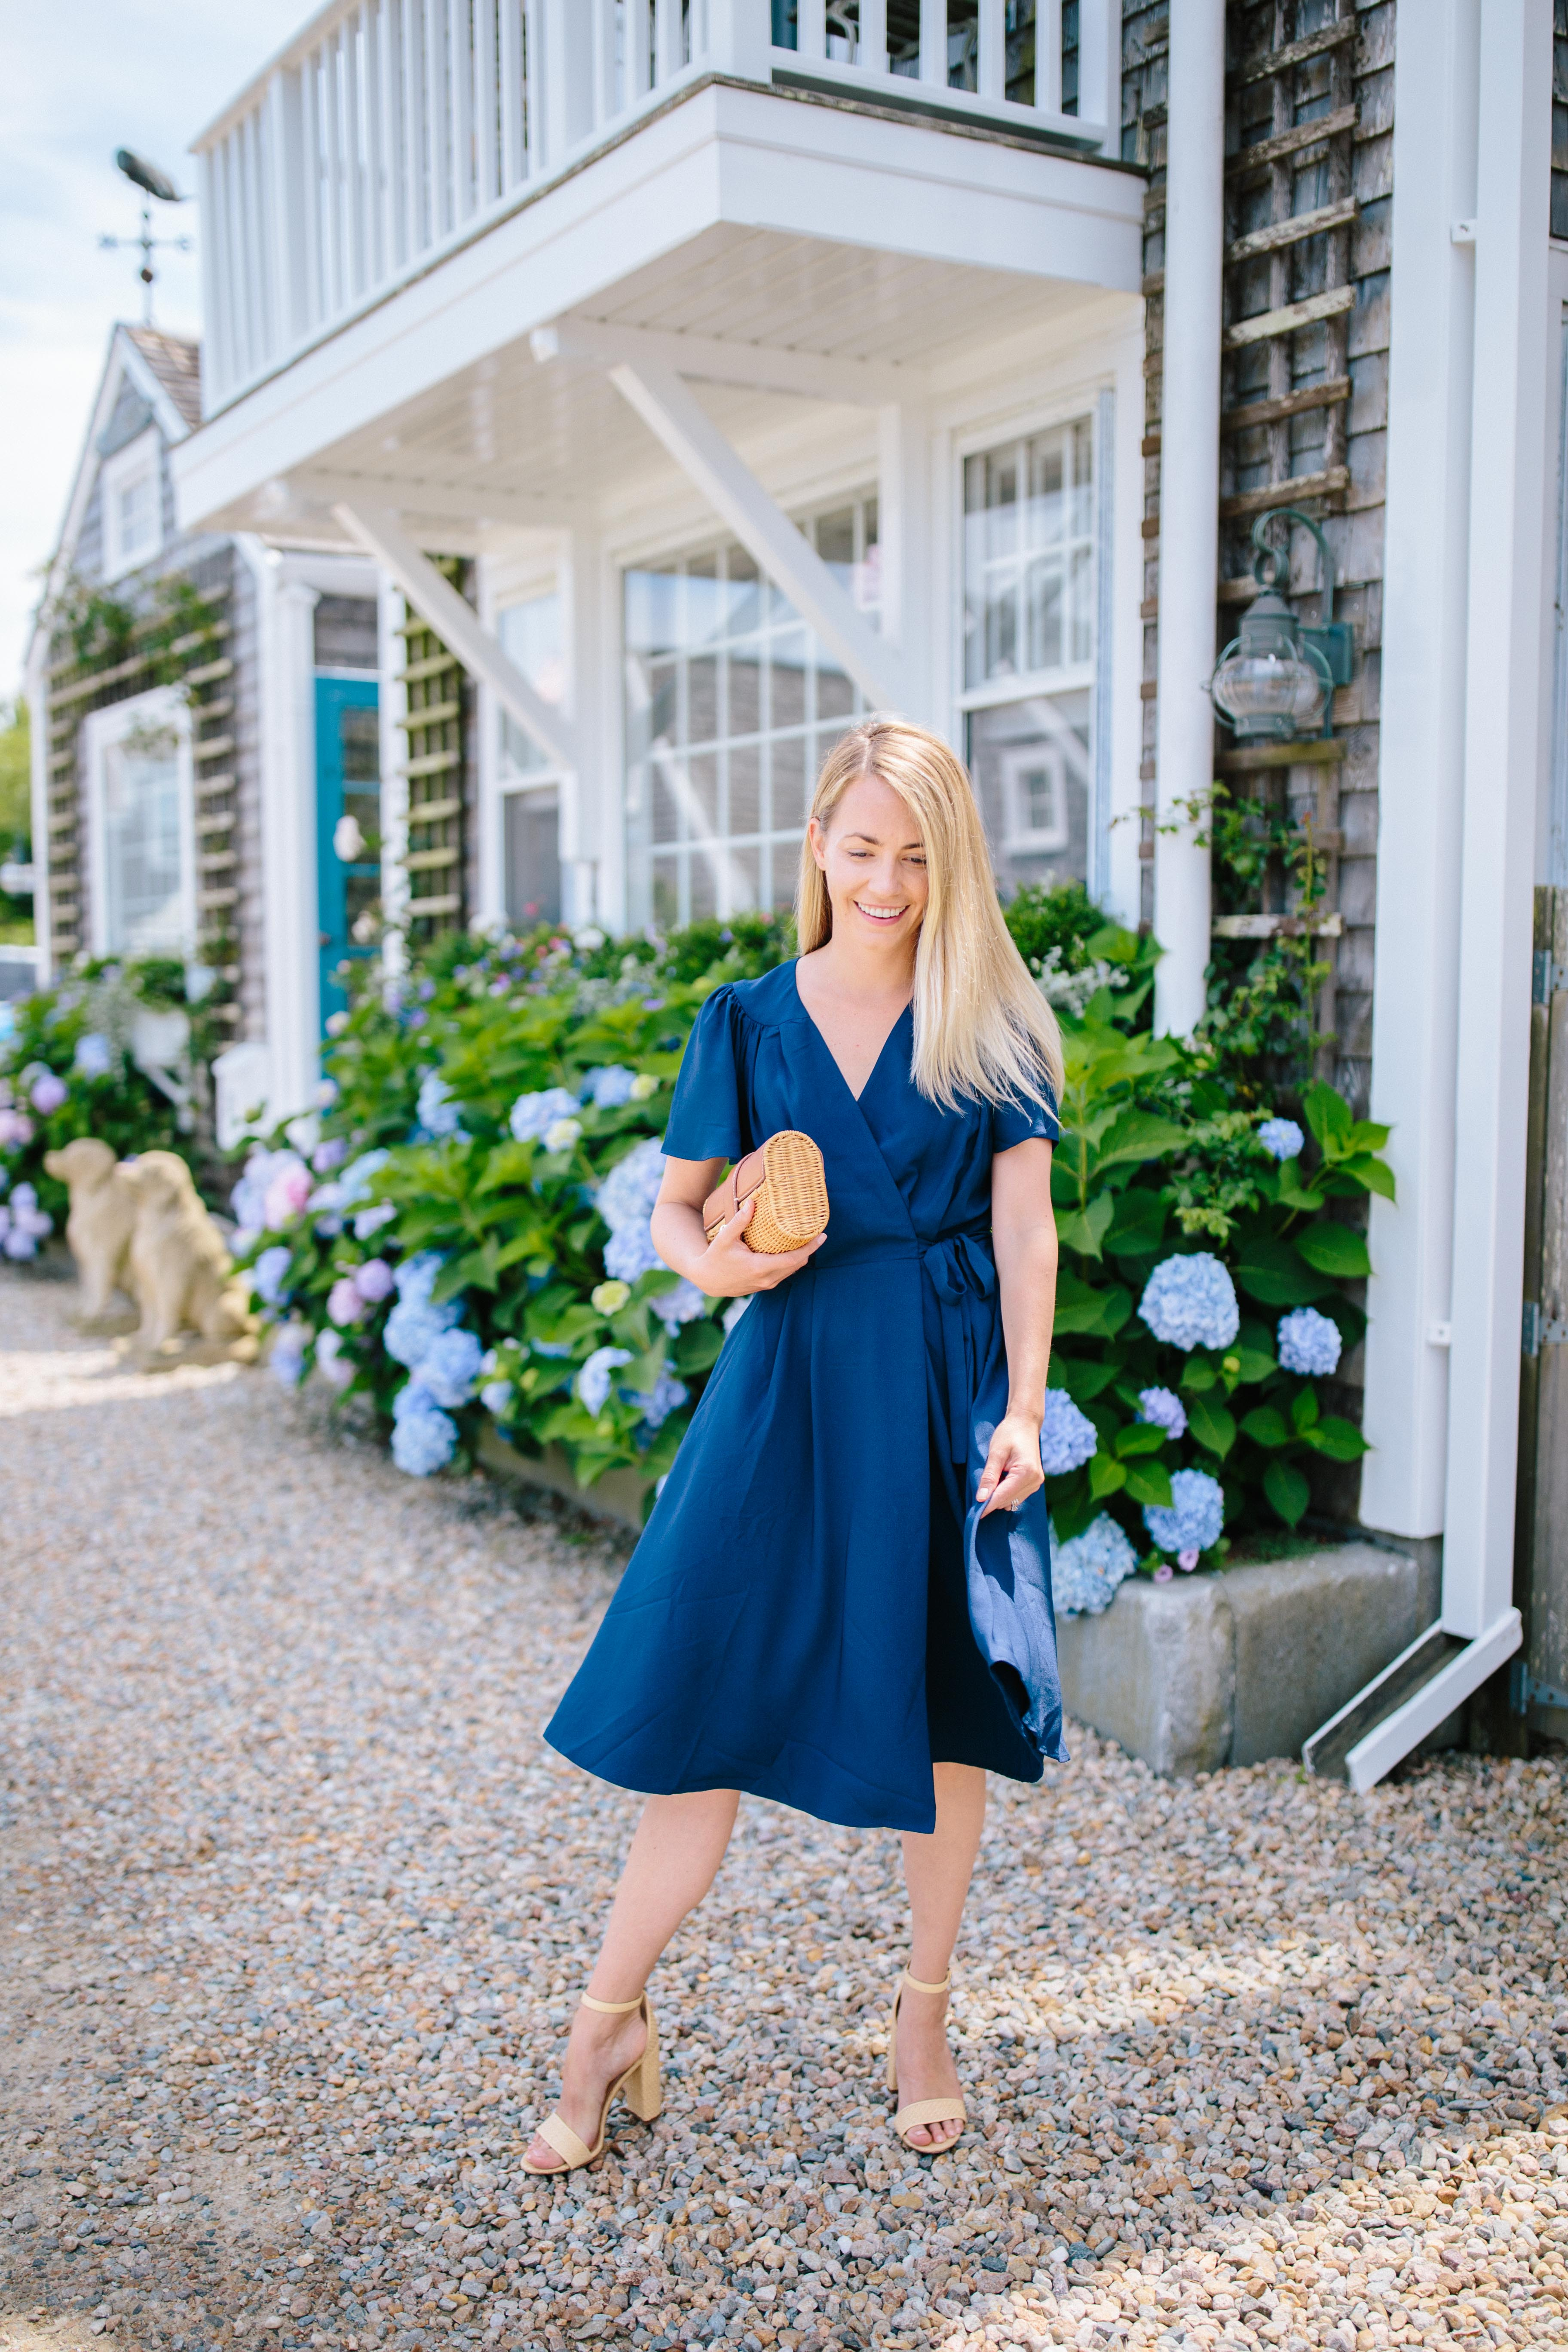 Shop this Dress on Sale Now, Fall Wedding Guest Dresses for 2019 | Rhyme & Reason